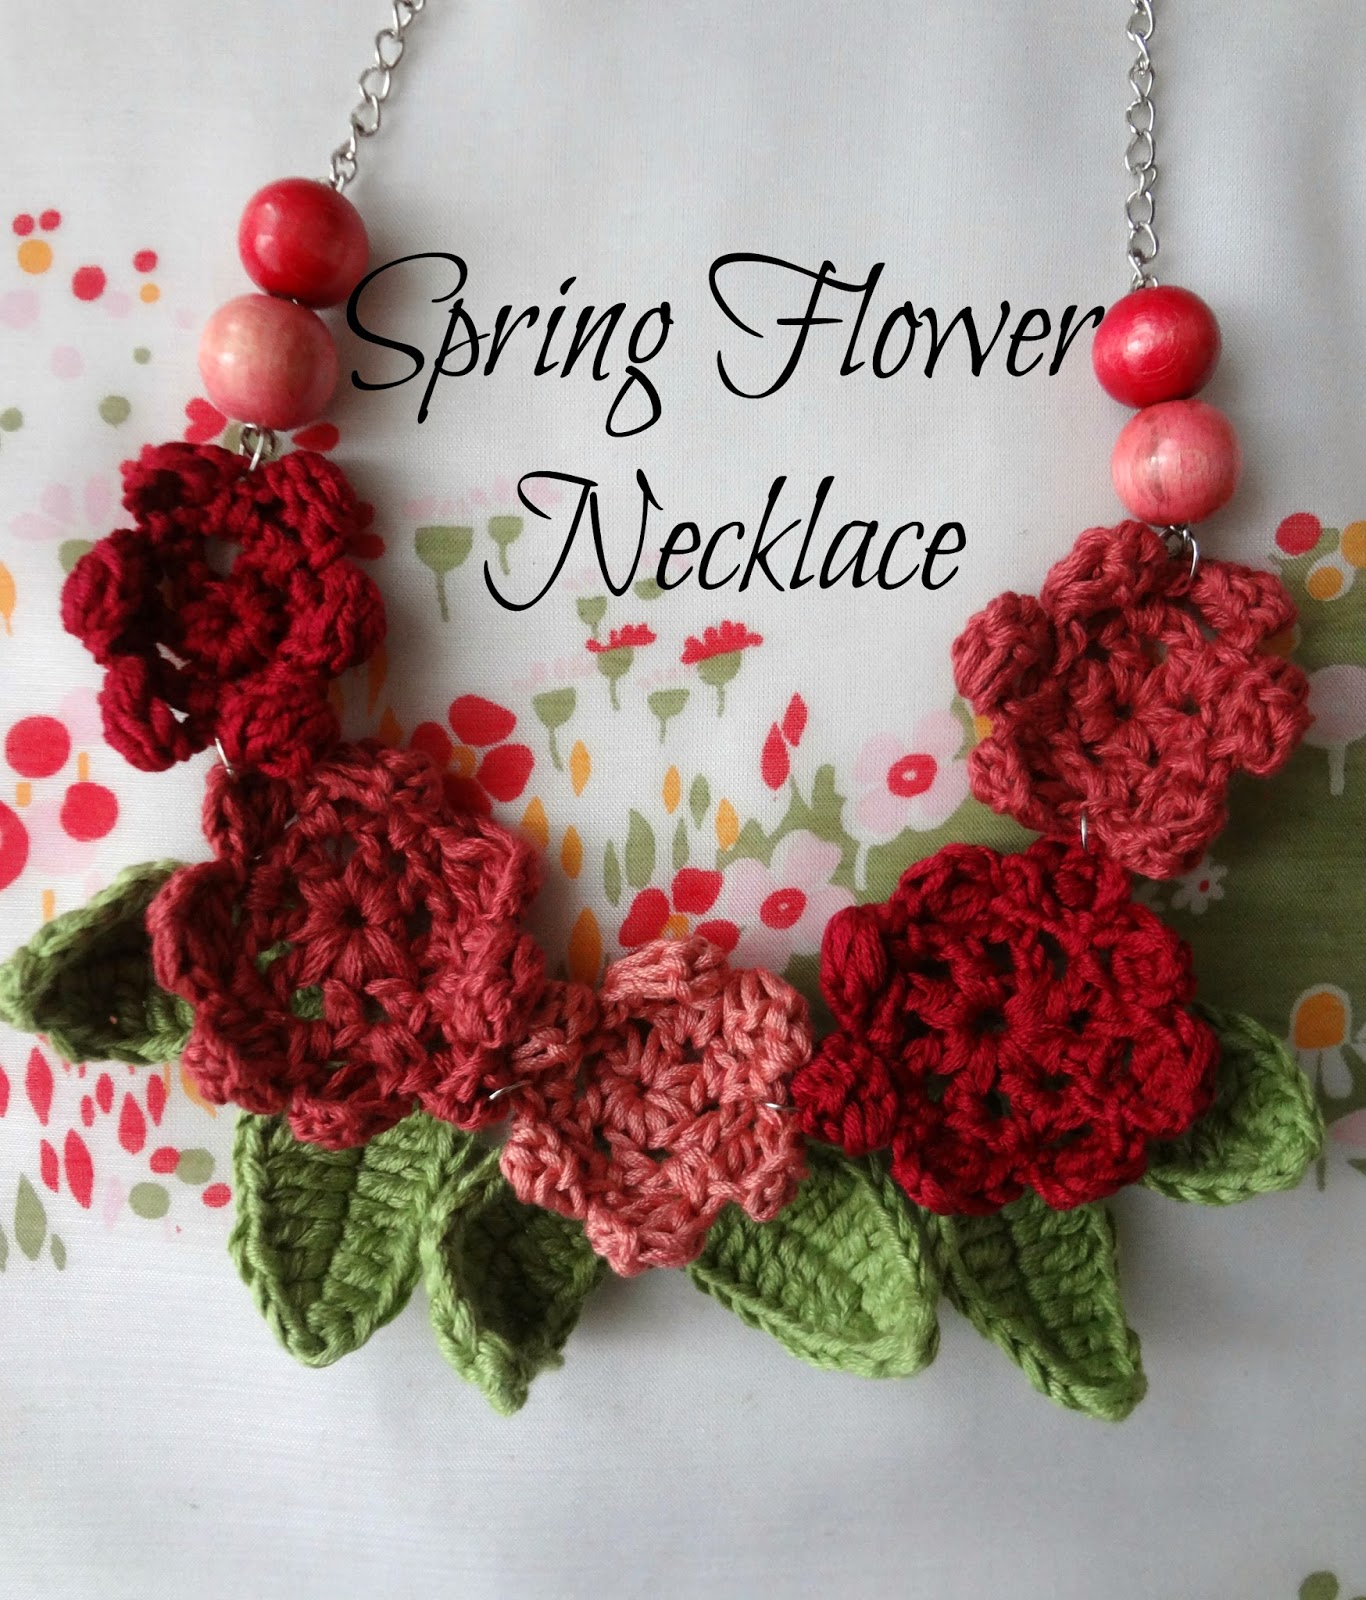 Crochet Necklace : Little Treasures: Spring Flower Necklace 2- a crochet pattern